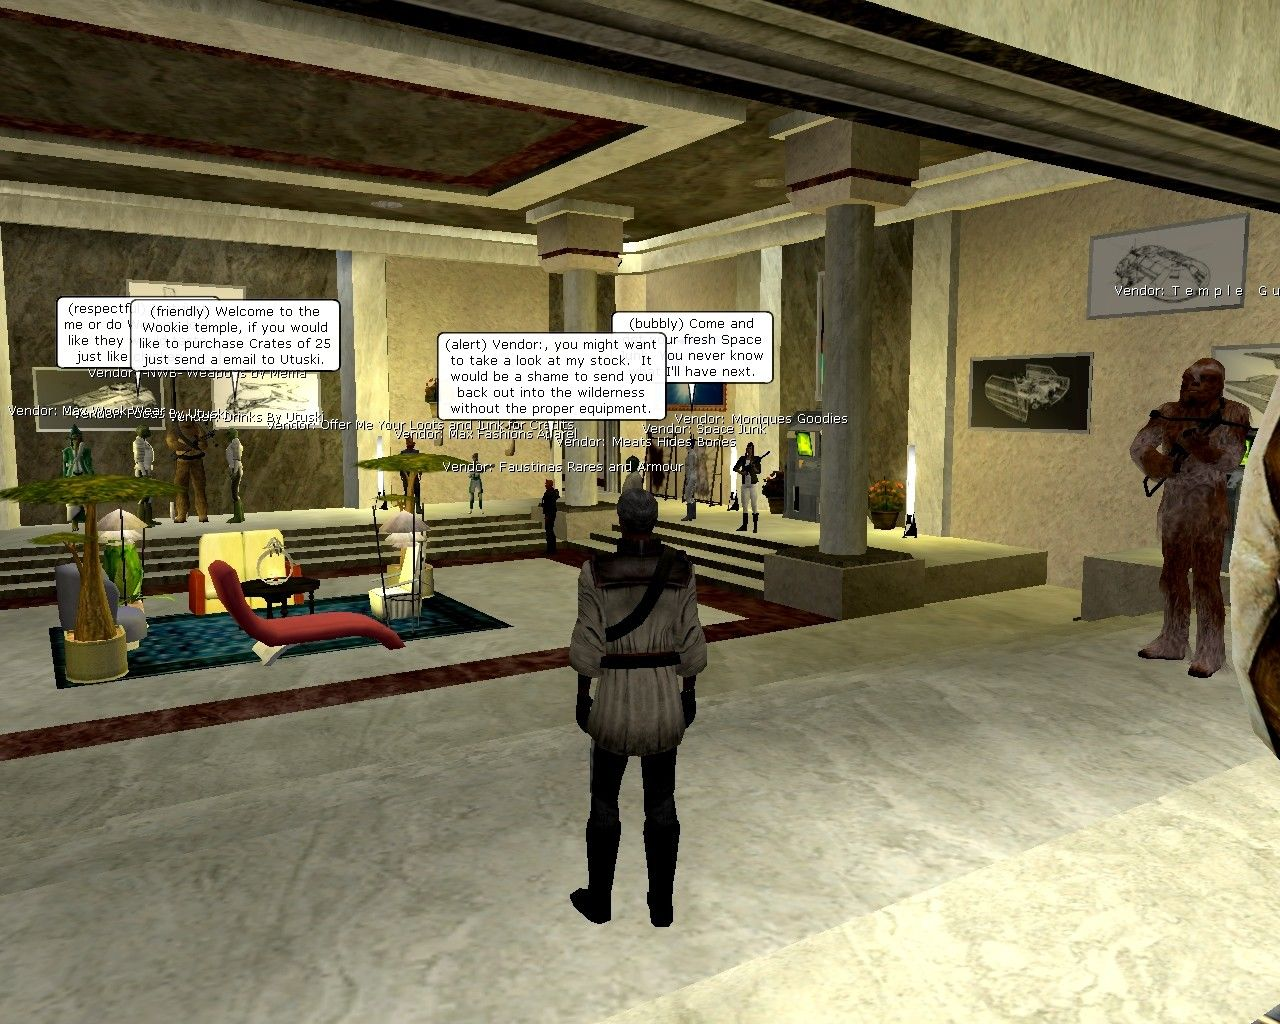 Star Wars: Galaxies - An Empire Divided Windows A city mall at the height of the game's popularity. Vendors are player-placed, selling crafted goods in a common, shared space.